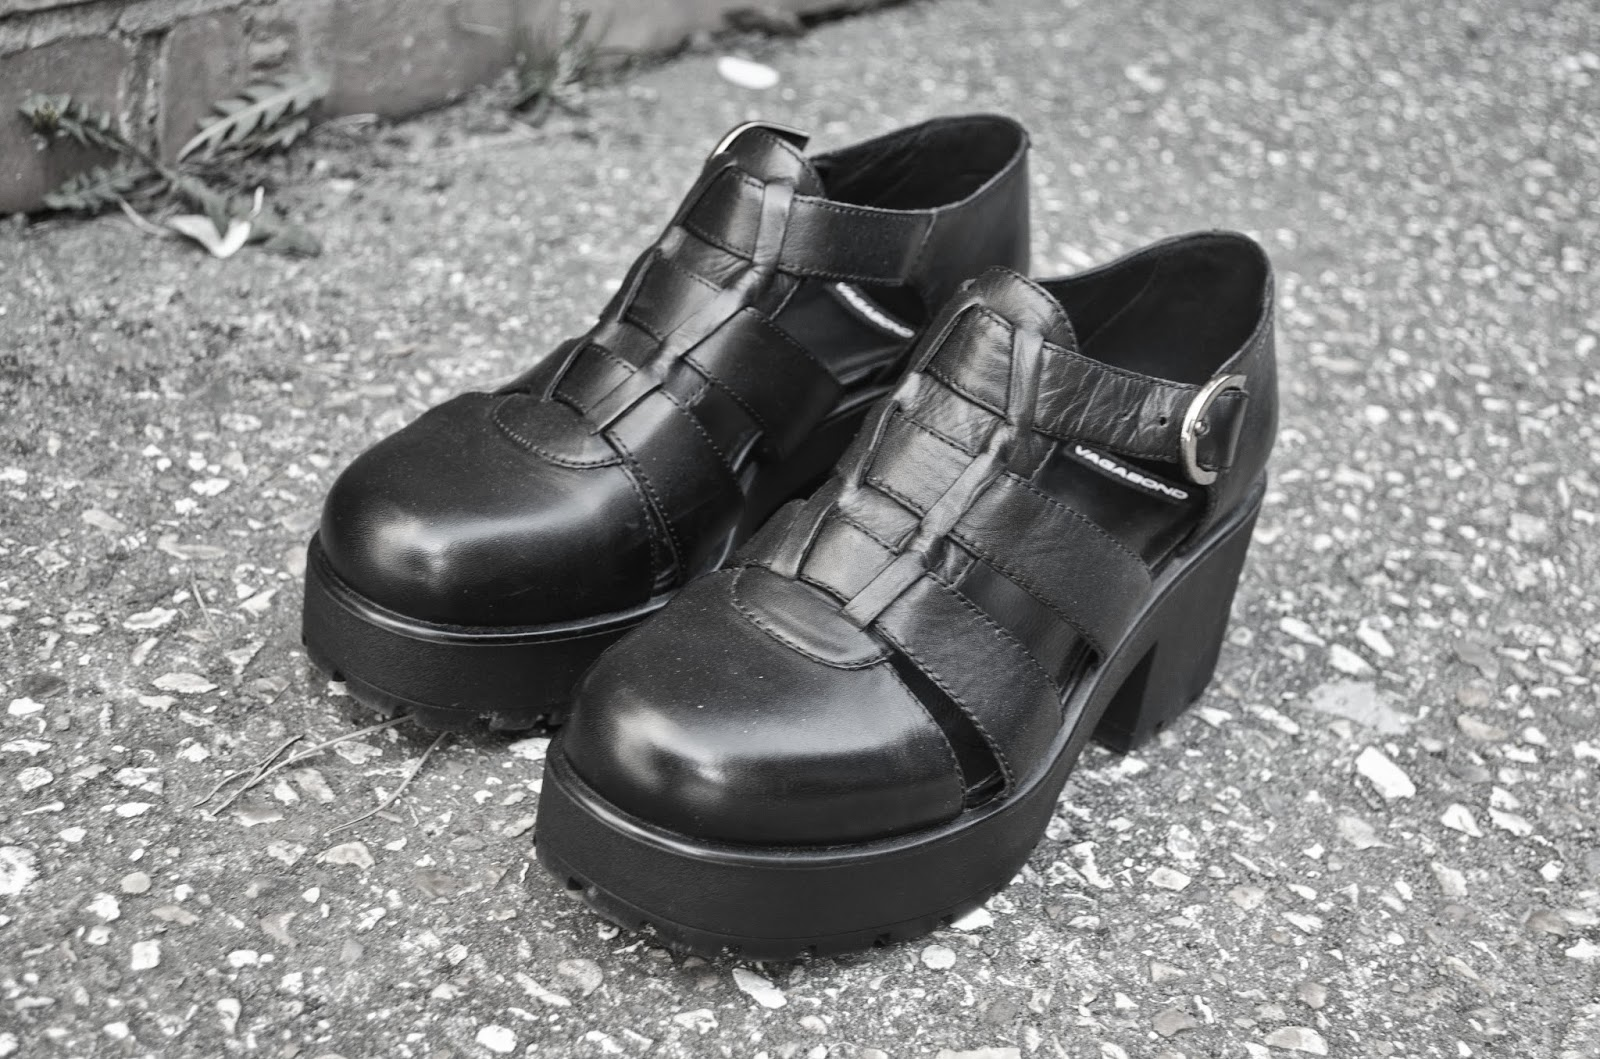 Black vagabond sandals - The Cutaway Detailing On The Side Makes Them Perfect For Spring But You Can Also Rock Them In Autumn With A Nice Pair Of Socks The Chunky Heels Makes It